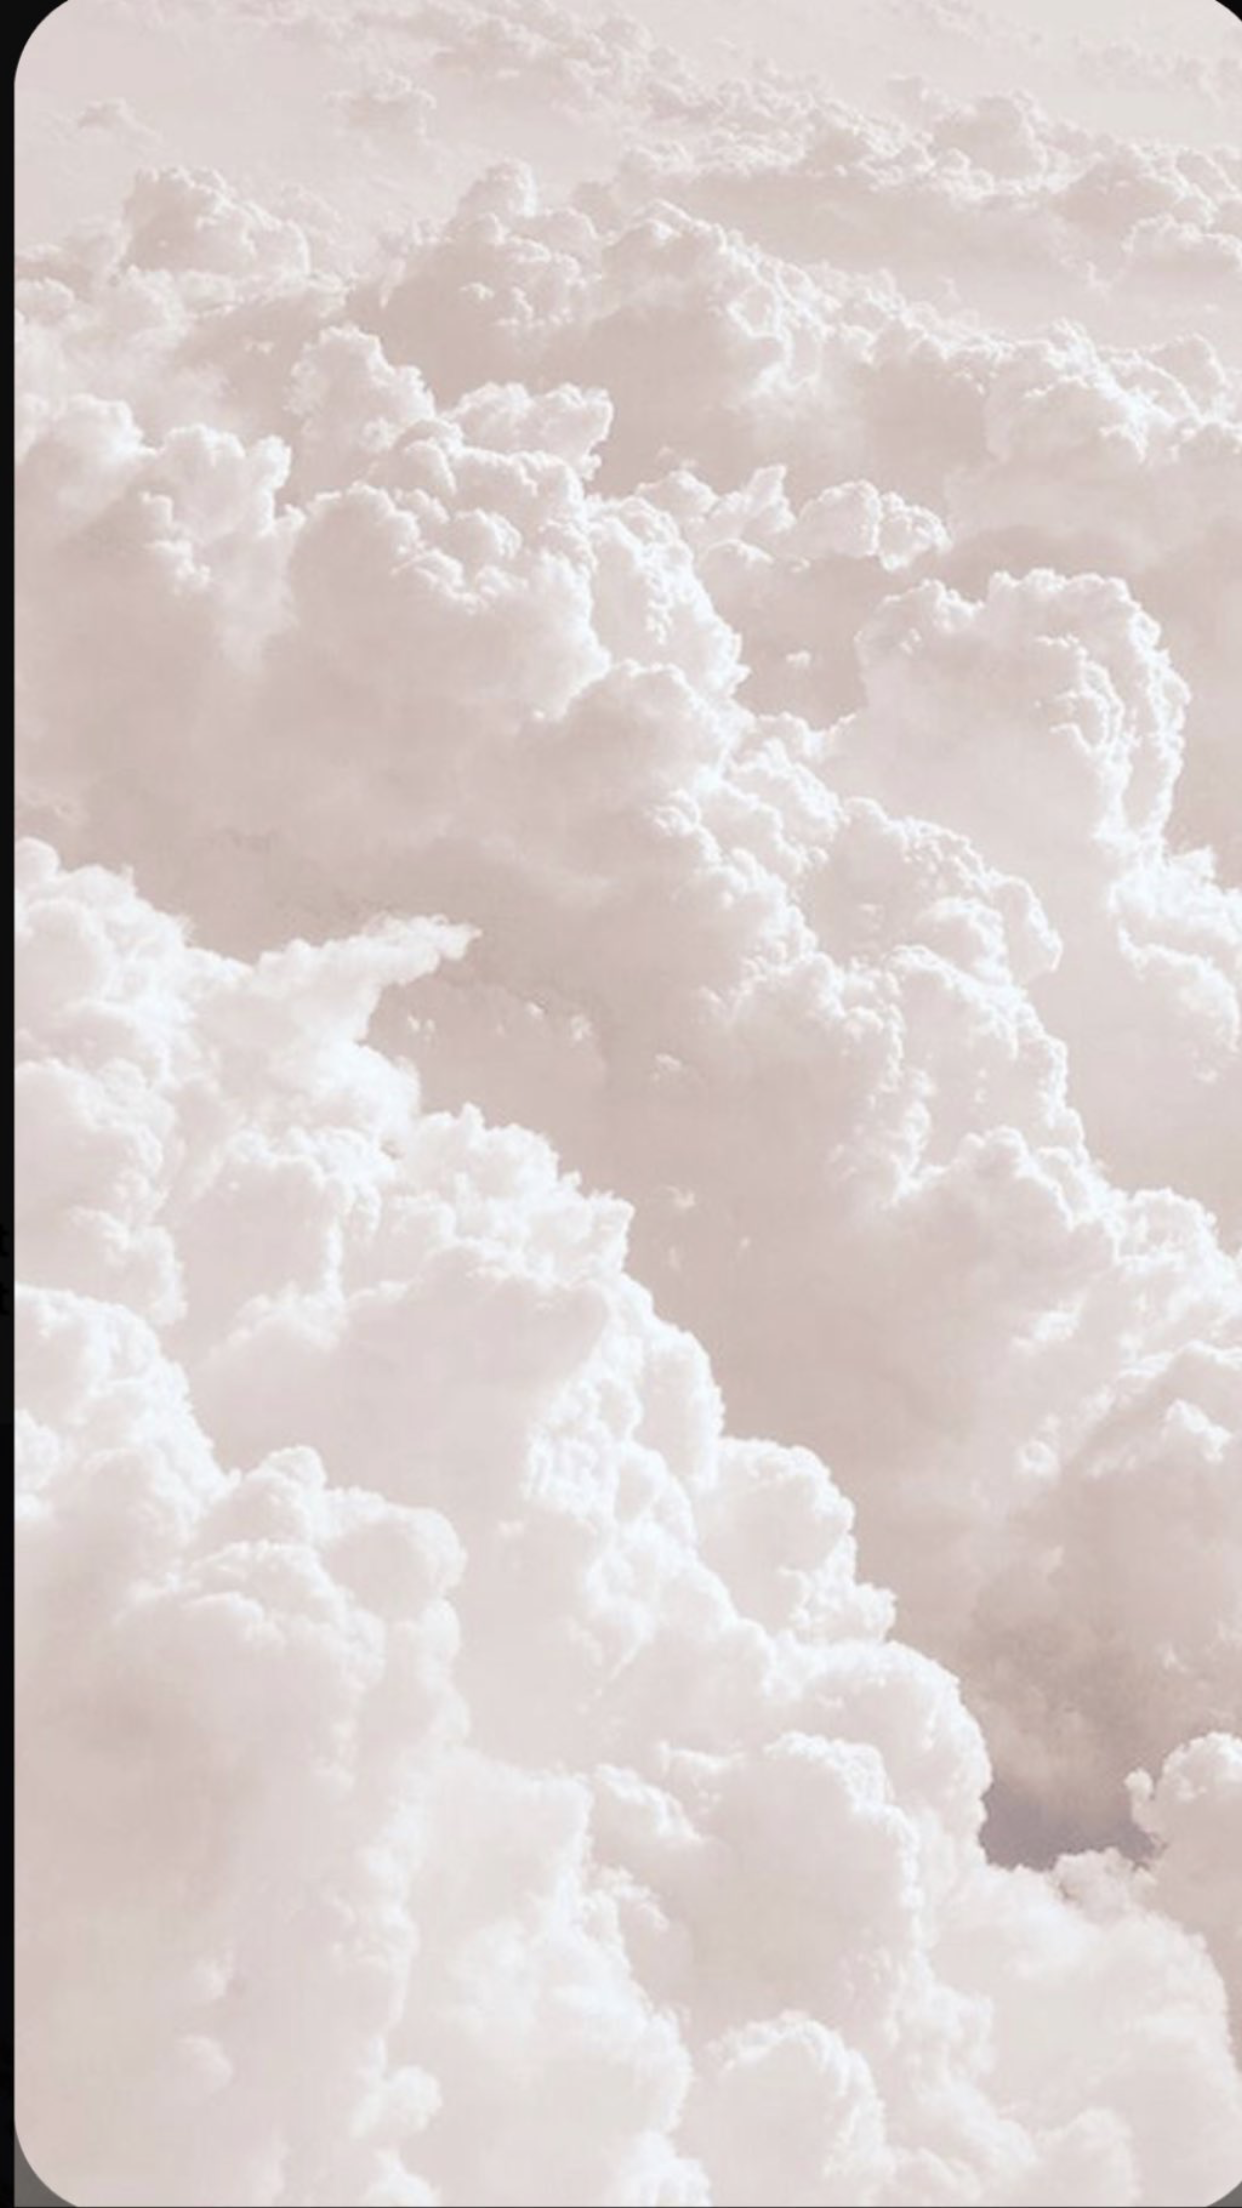 White Clouds Iphone Wallpaper Girly Ipad Wallpaper Free Iphone Wallpaper